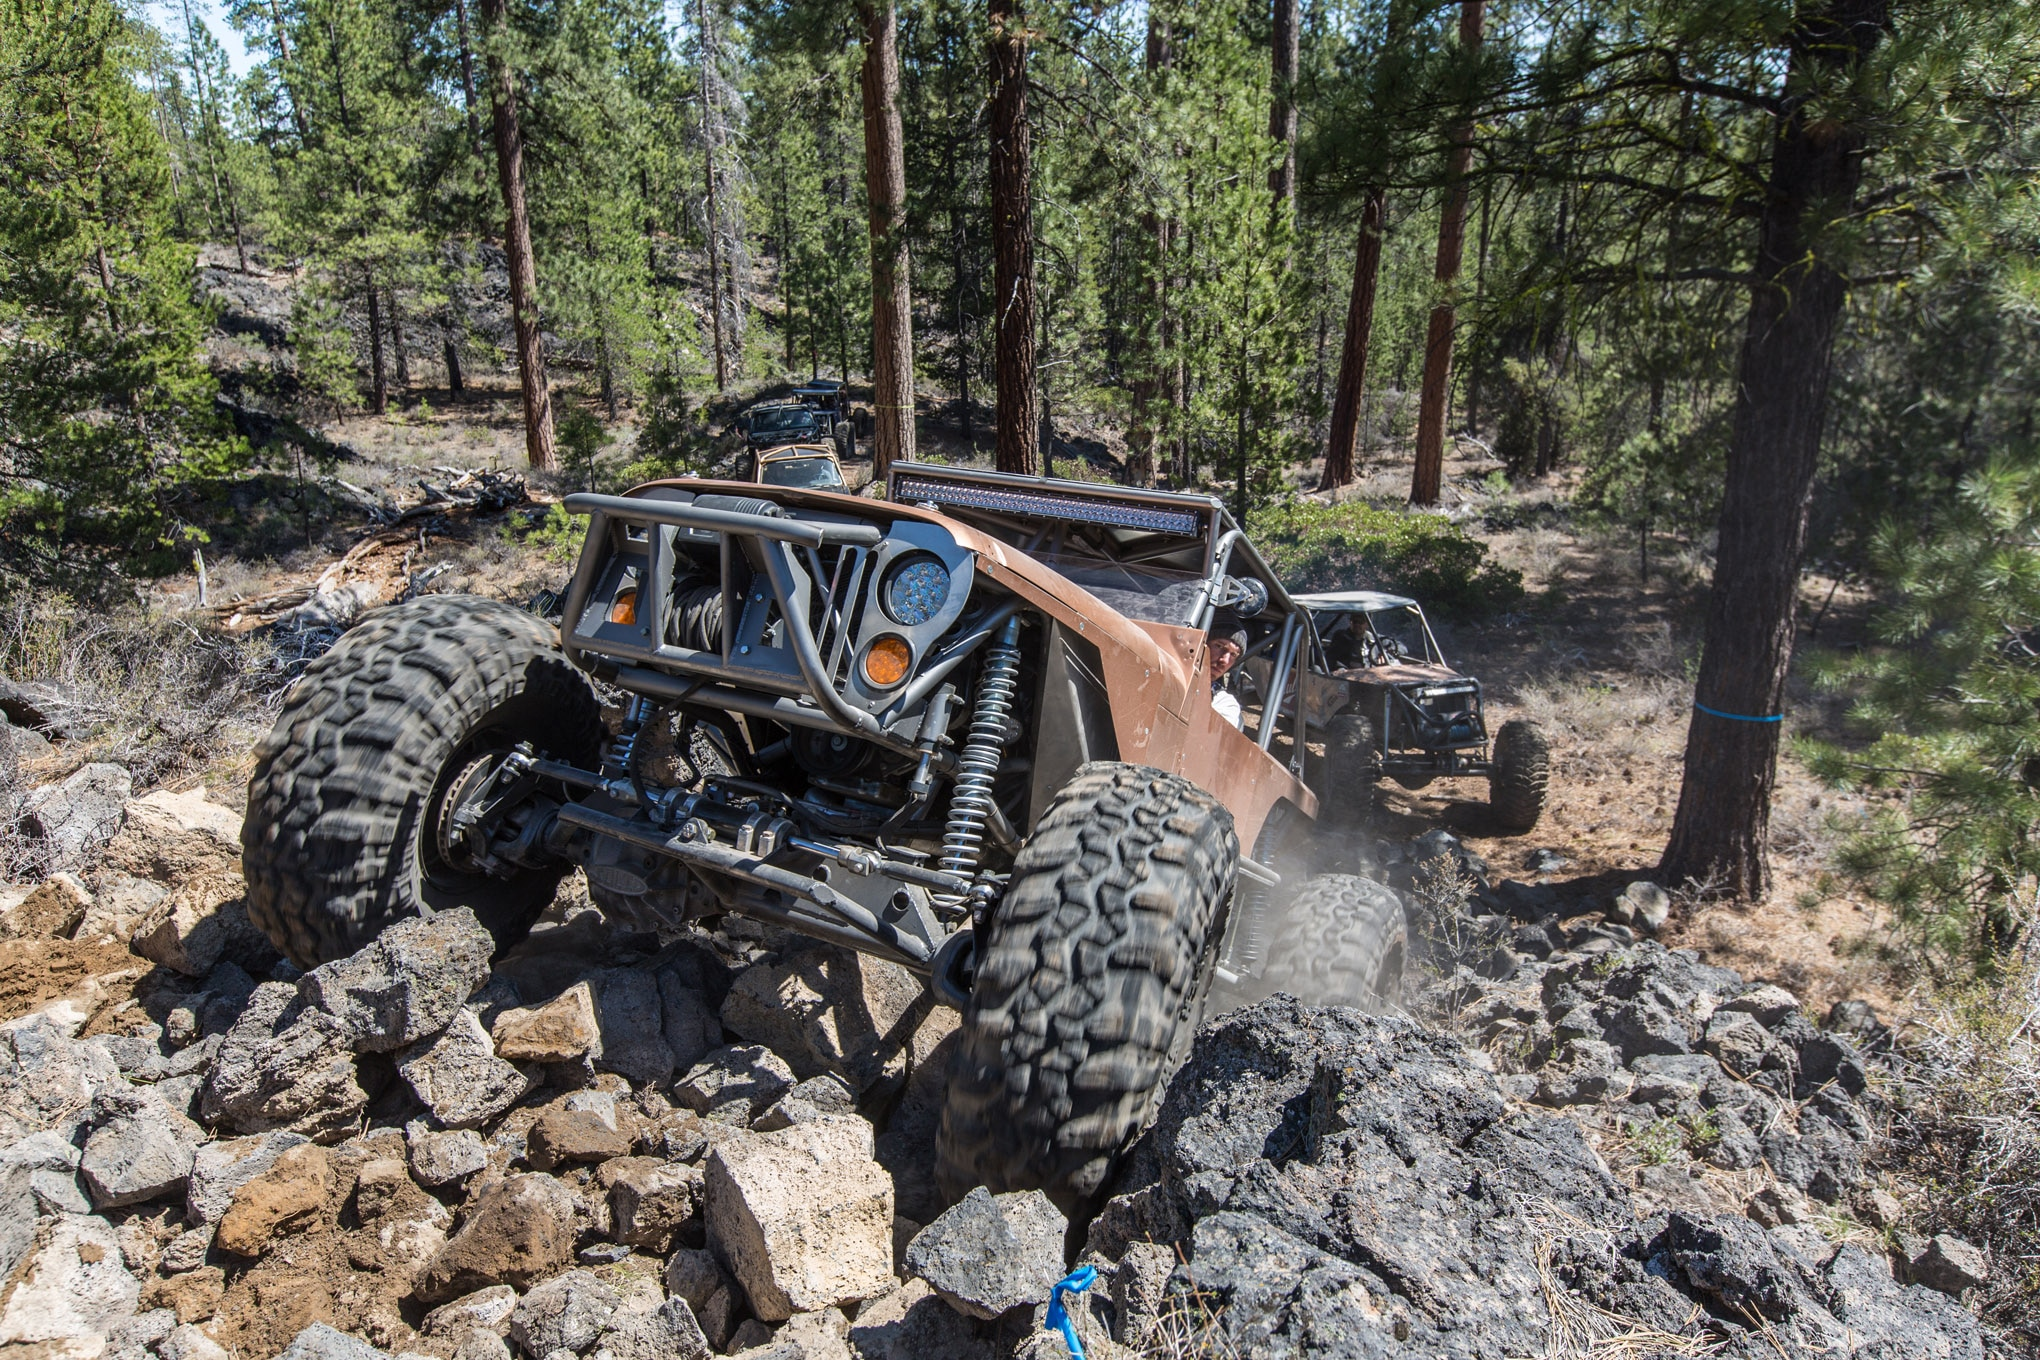 This was the maiden voyage for Chris Bradford's new Jeep buggy, and he was all smiles. Power comes from a 5.3L V-8 mated to a TH350 and NP205 with a 3:1 LoMax kit from JB Conversions. While it looks like a Jeep, the narrowed YJ tub is placed on a full tube chassis and fitted with a modified JK hood.